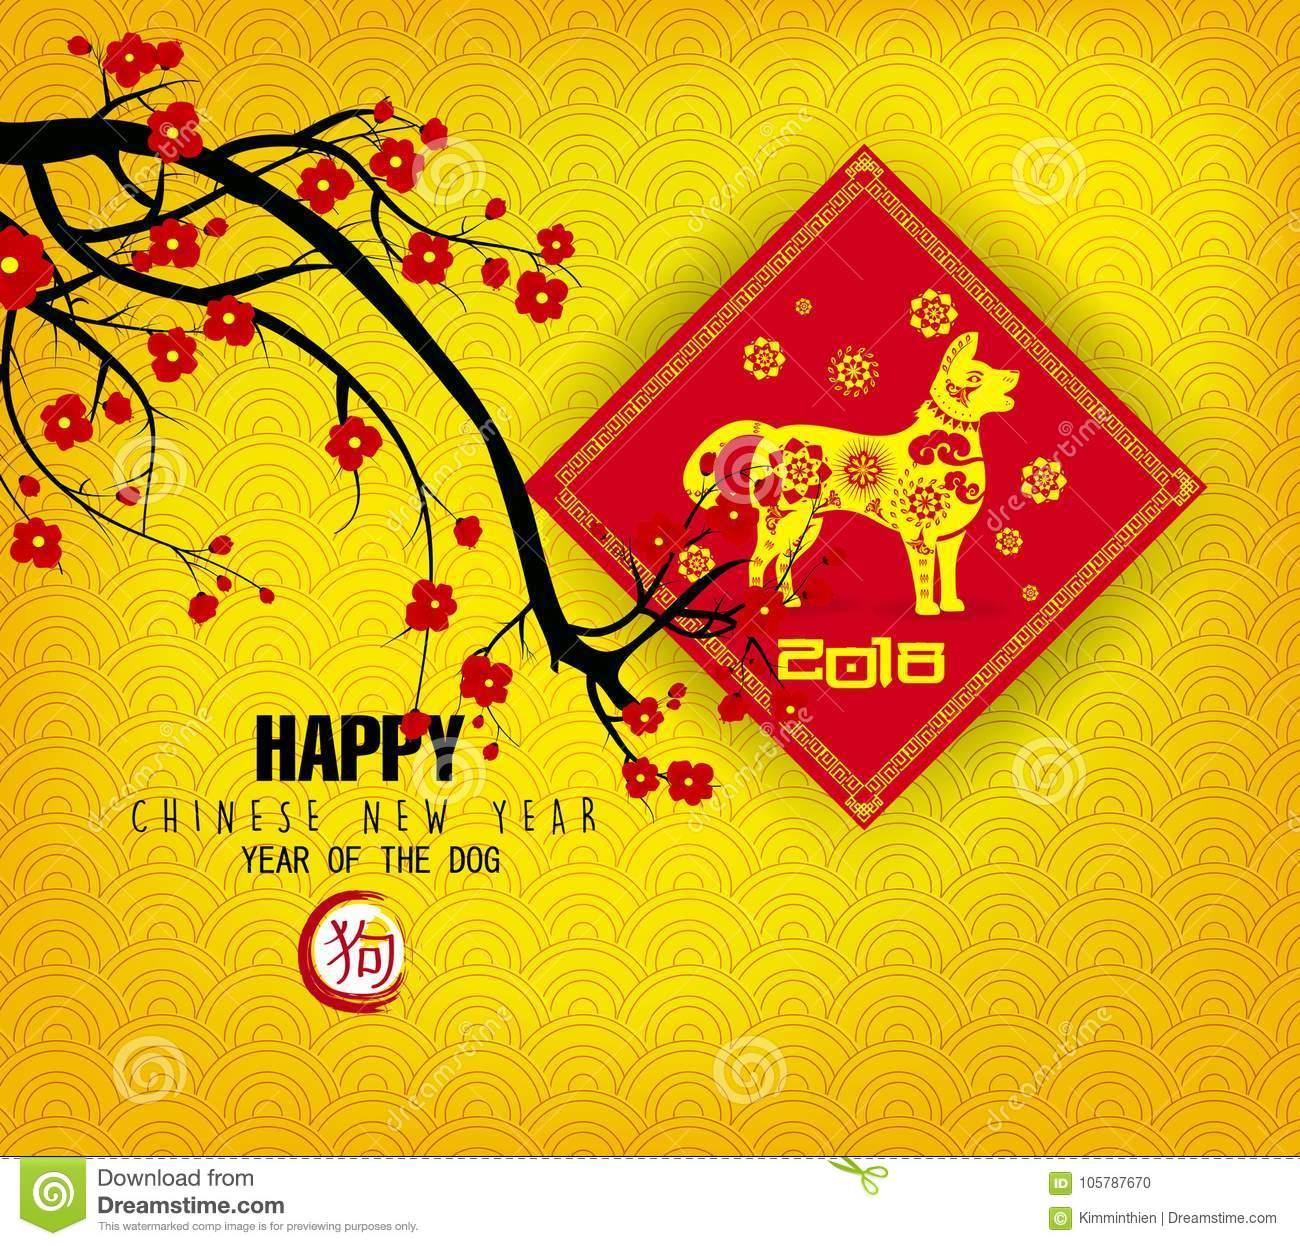 Happy new year 2018 greeting card and chinese new year of the dog download happy new year 2018 greeting card and chinese new year of the dog stock vector m4hsunfo